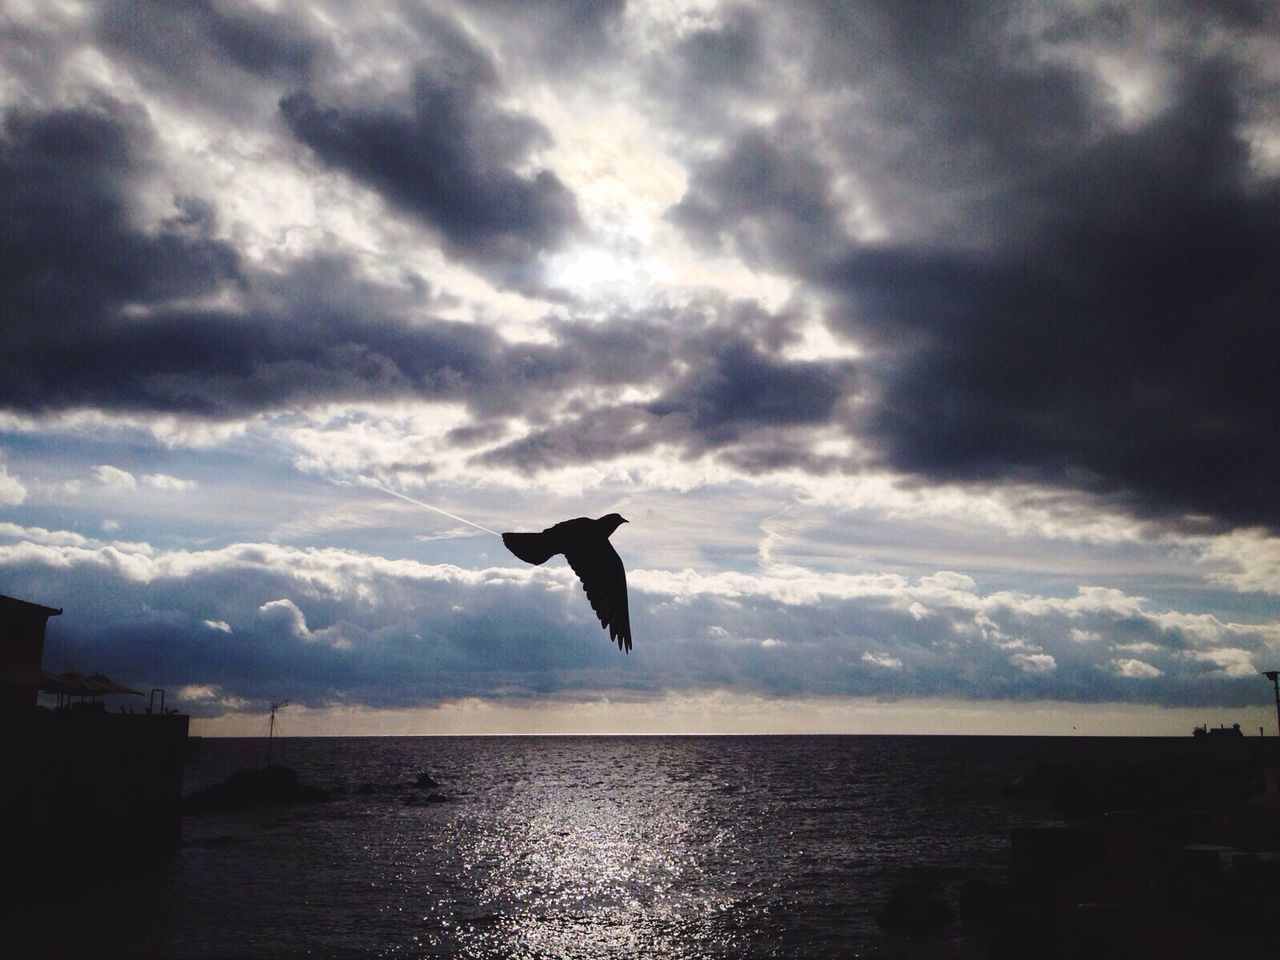 sea, water, nature, silhouette, sky, mid-air, one animal, cloud - sky, flying, animal themes, no people, beauty in nature, outdoors, spread wings, bird, day, animals in the wild, scenics, horizon over water